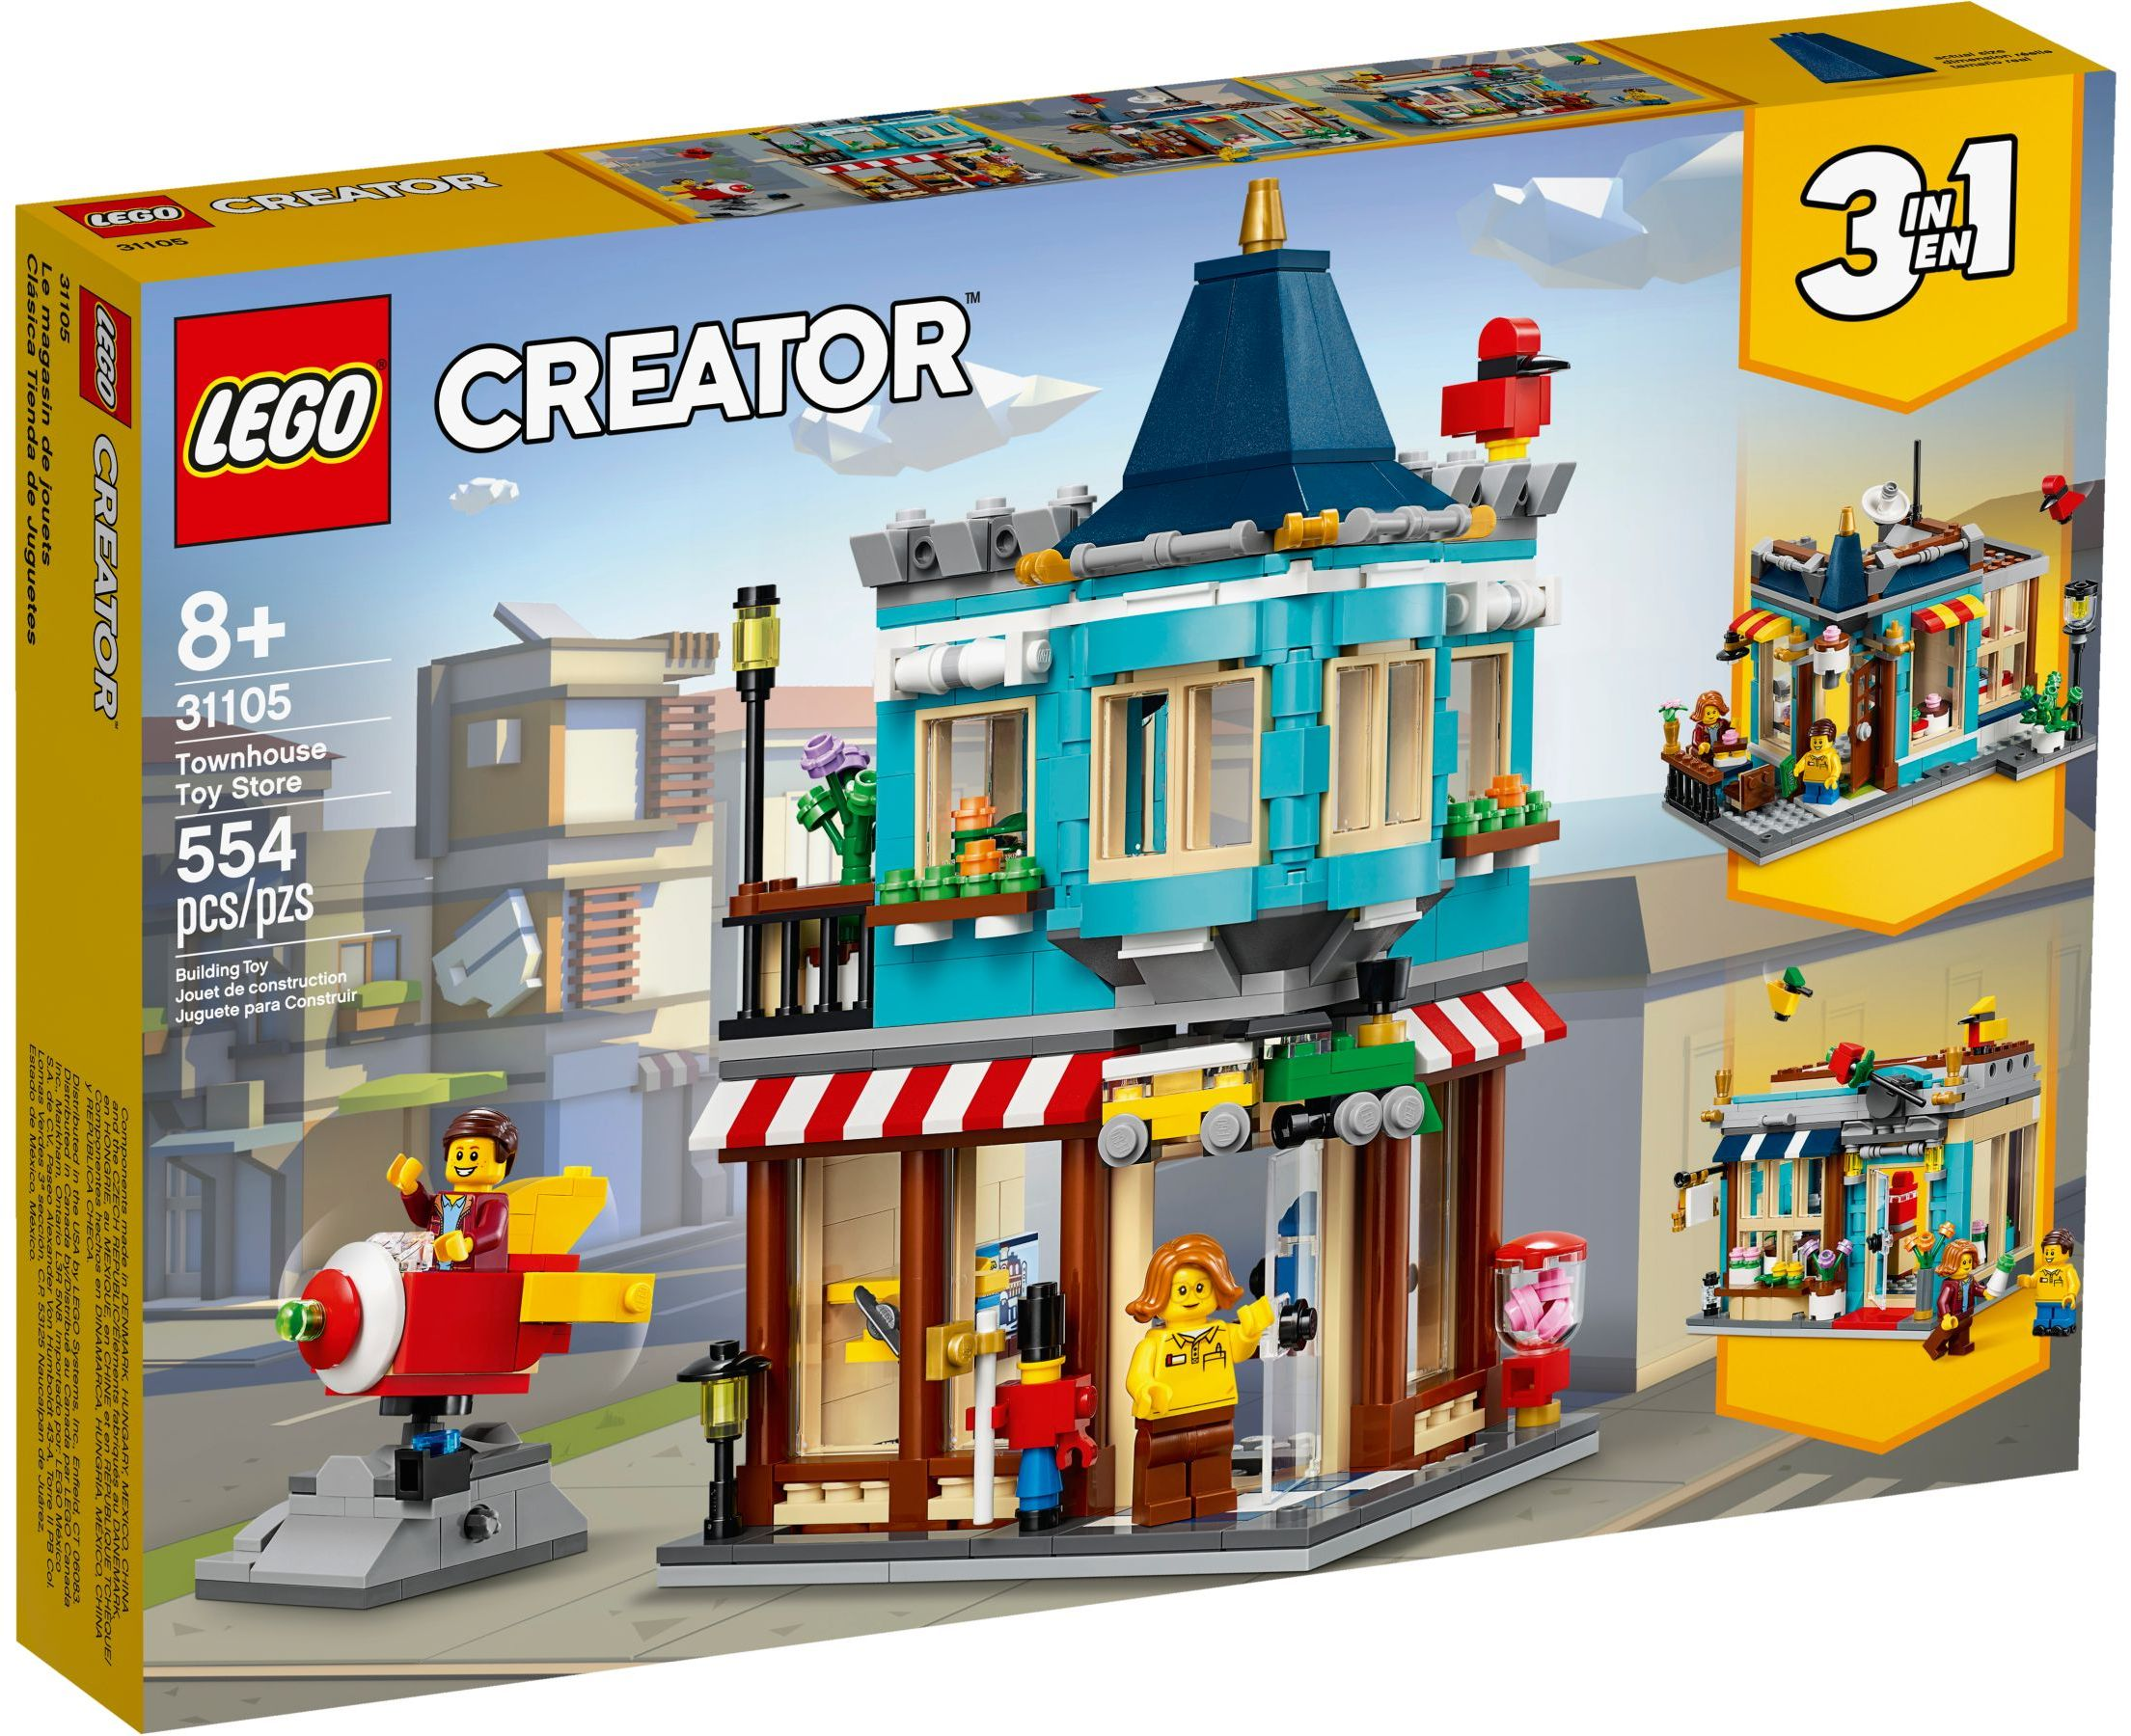 LEGO Creator - Townhouse Toy Store (31105)